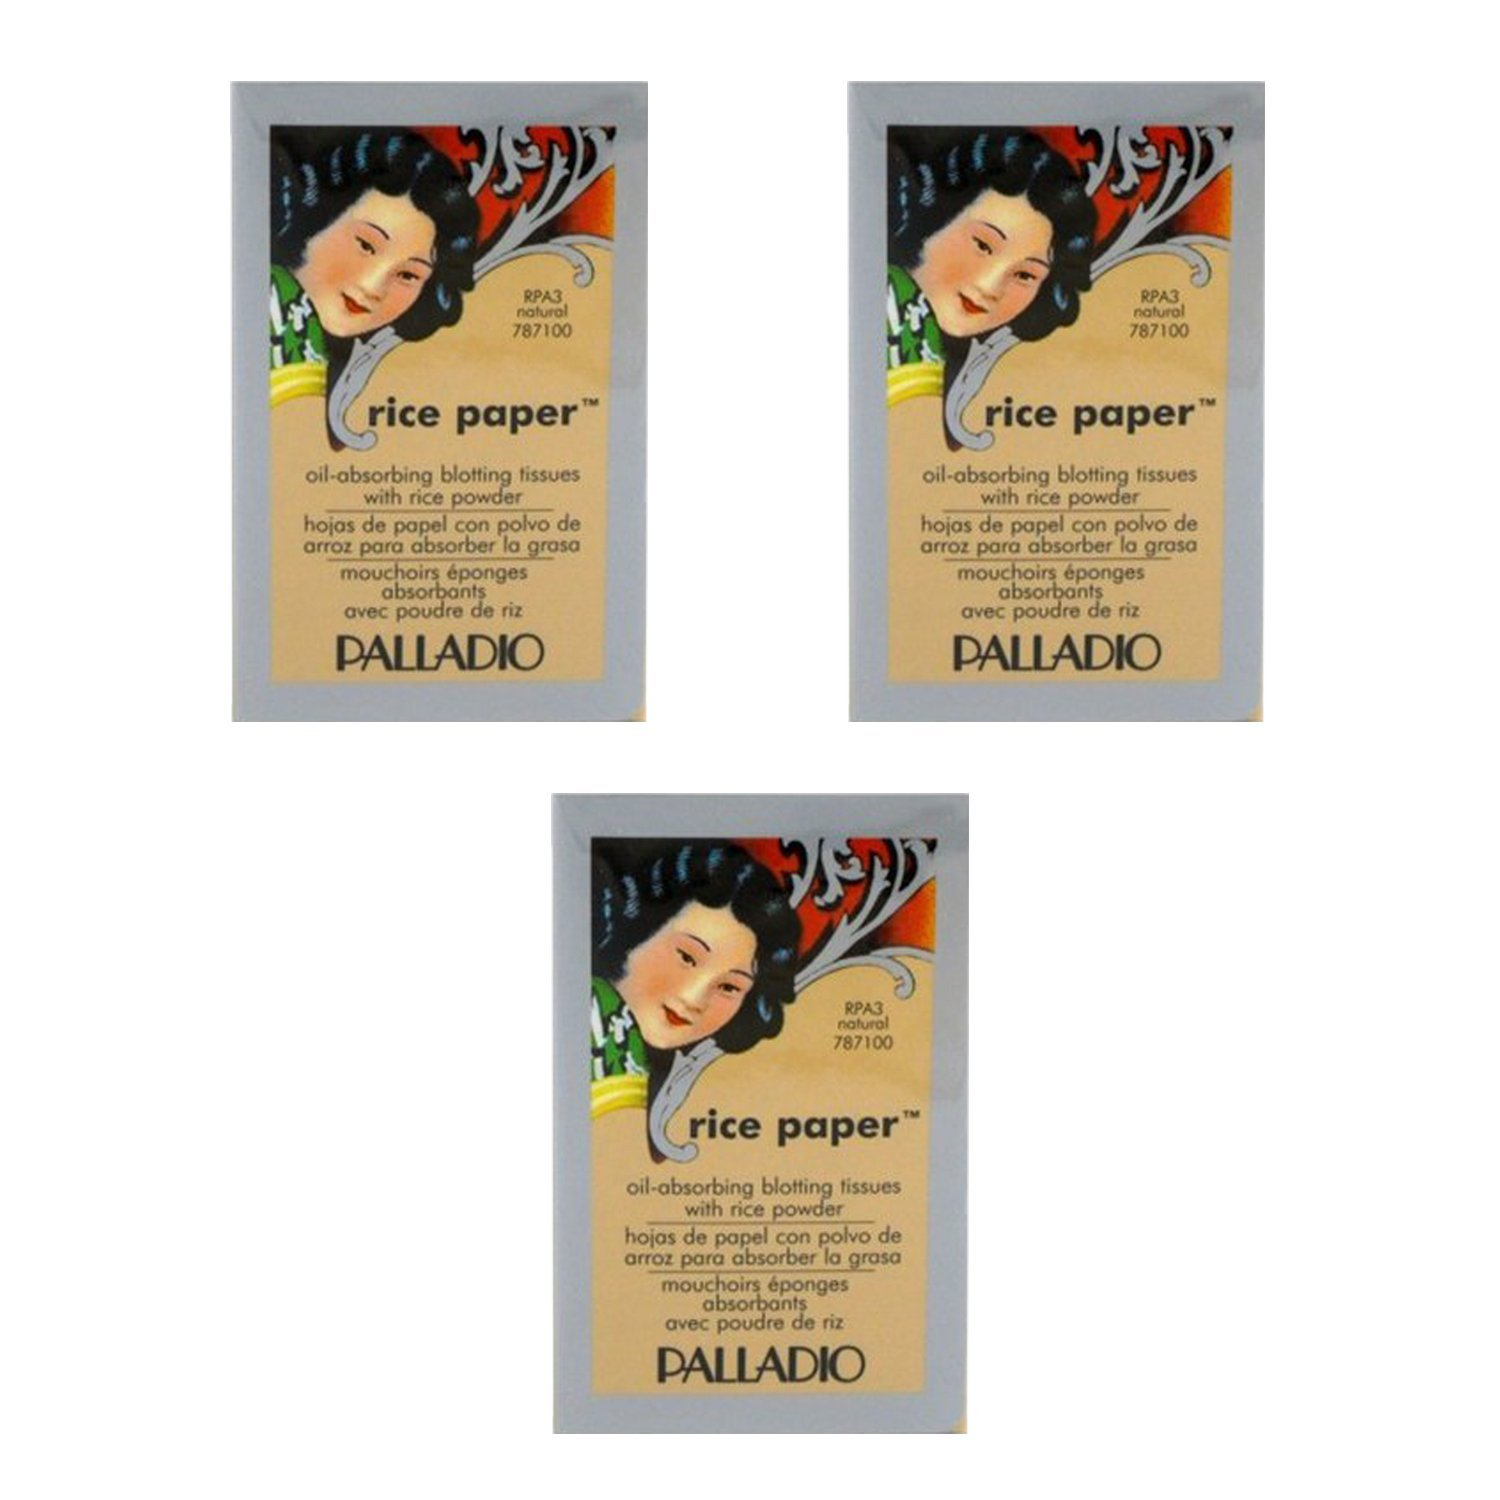 Amazon.com : Pack of 2 Palladio Rice Paper RPA3 Natural